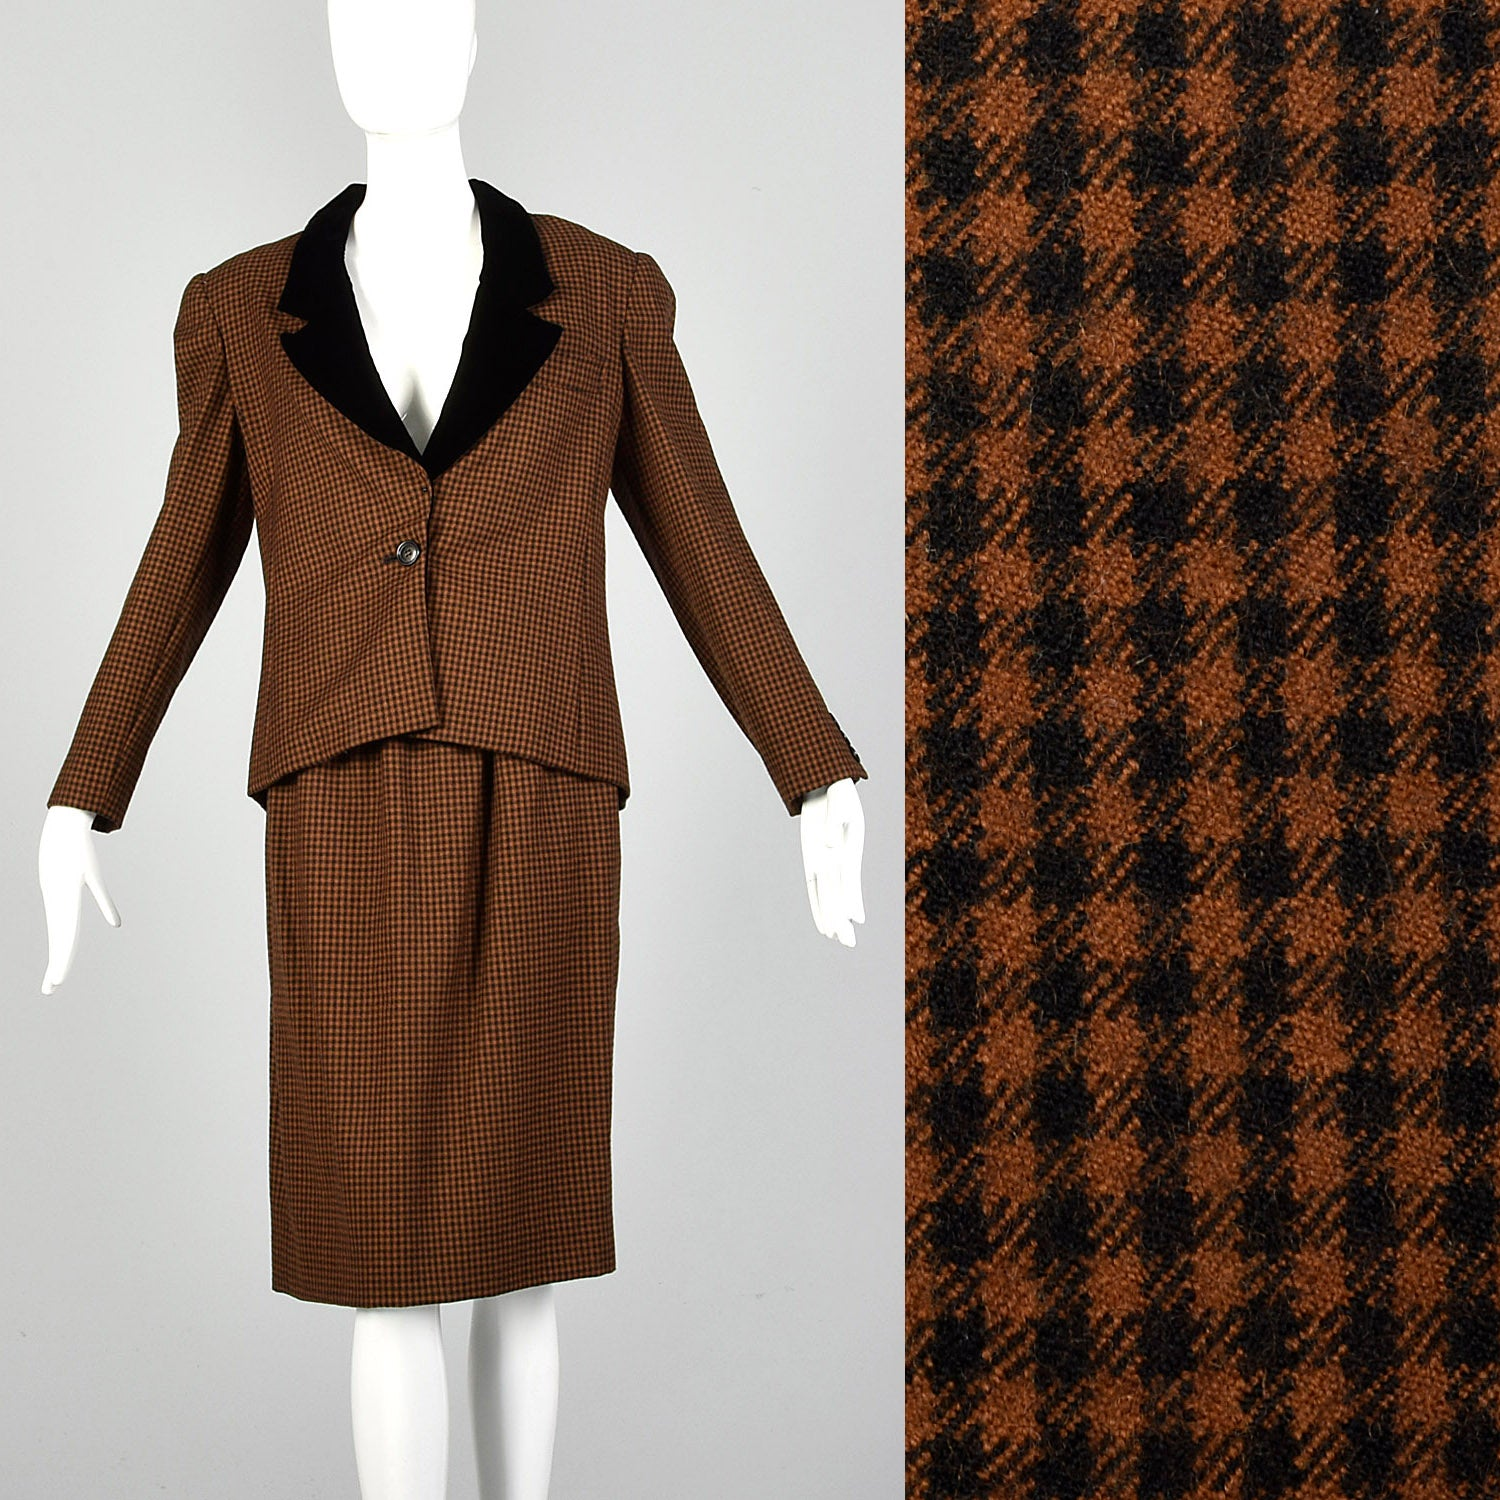 Small 1980s Oscar de la Renta Black and Brown Skirt Suit